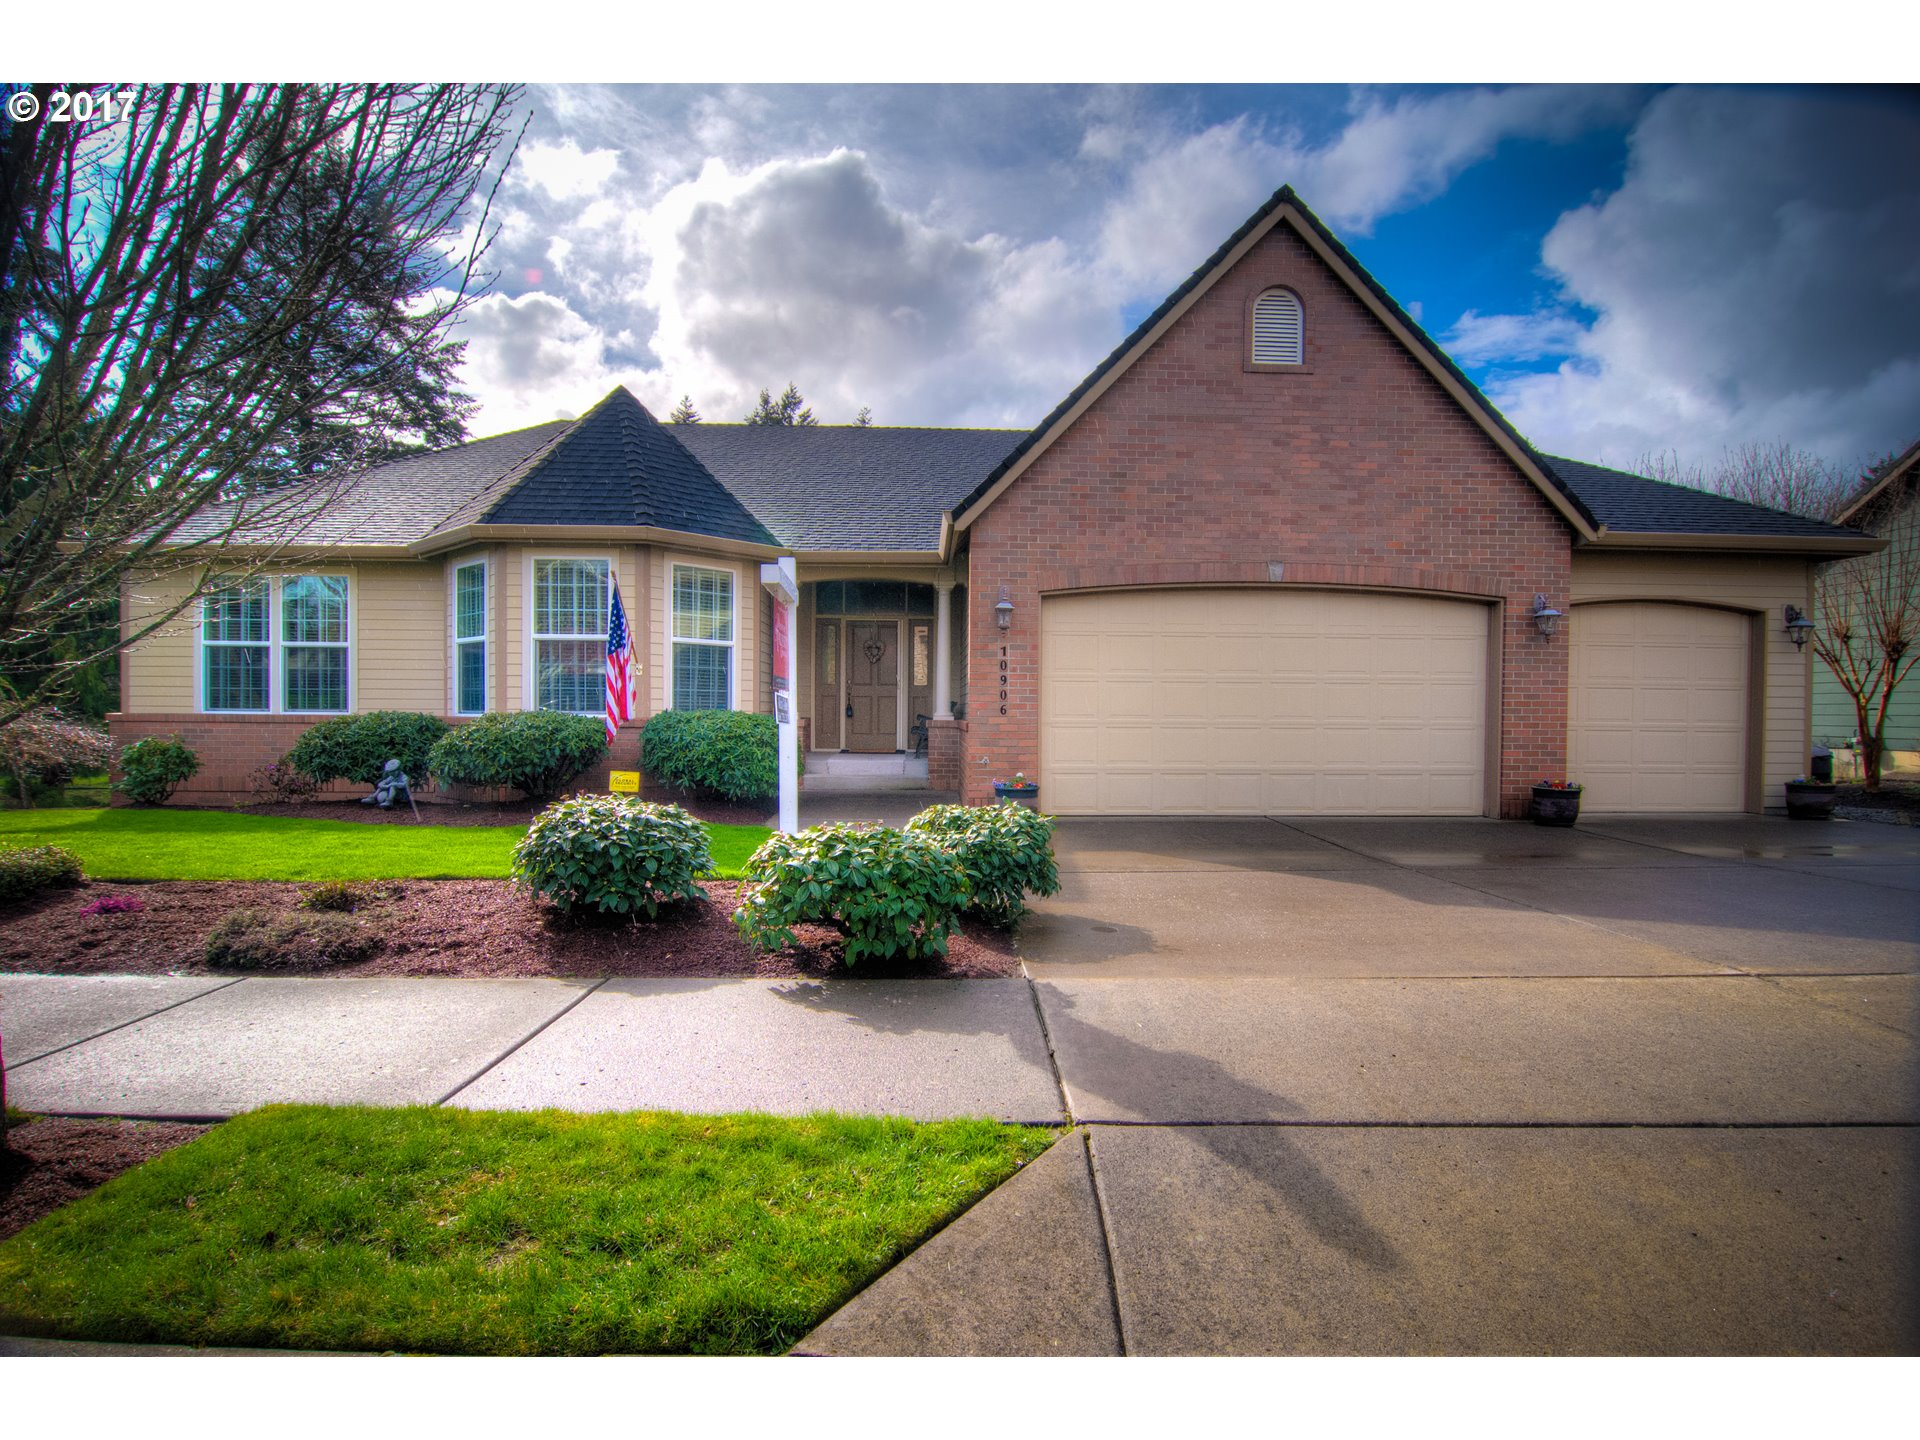 10906 NW 9TH AVE, Vancouver, WA 98685